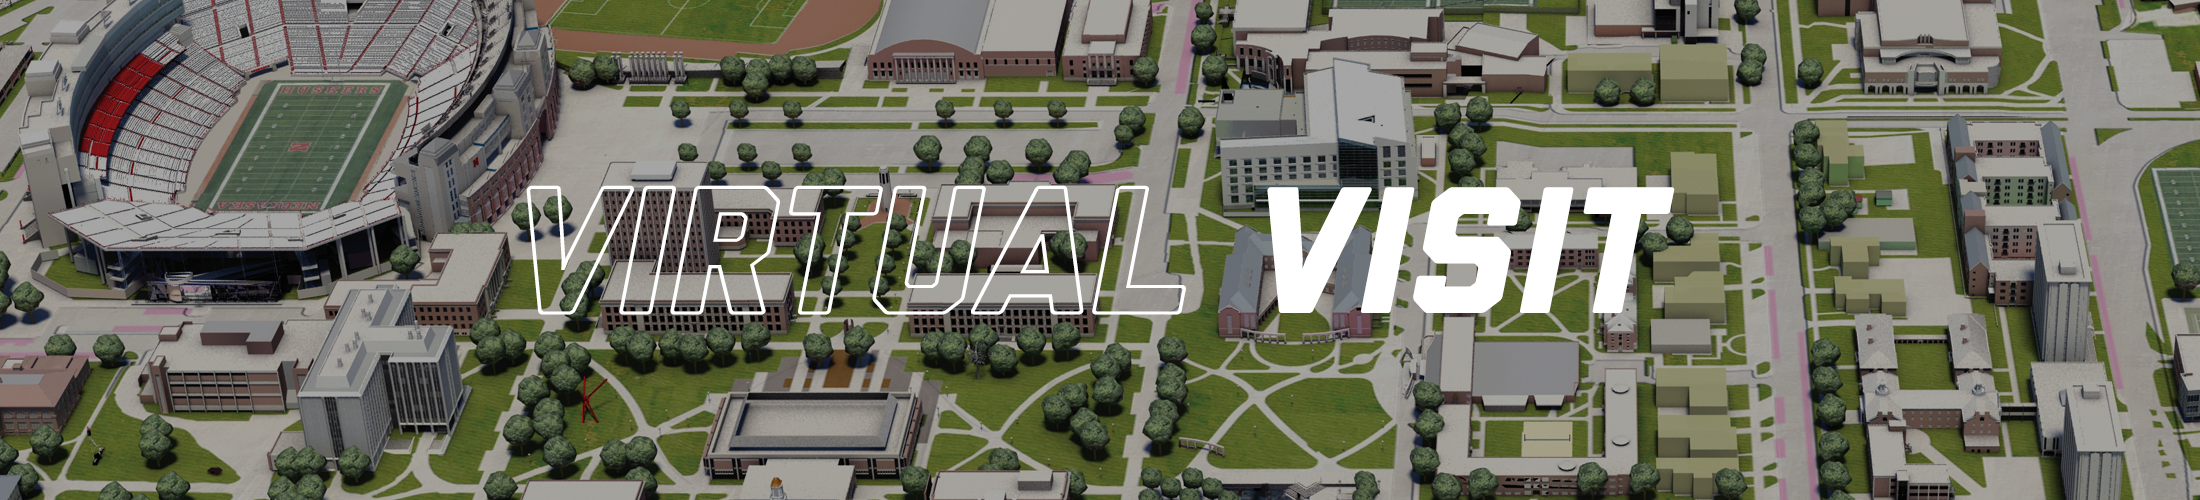 Virtual visit campus map with Oldfather Hall